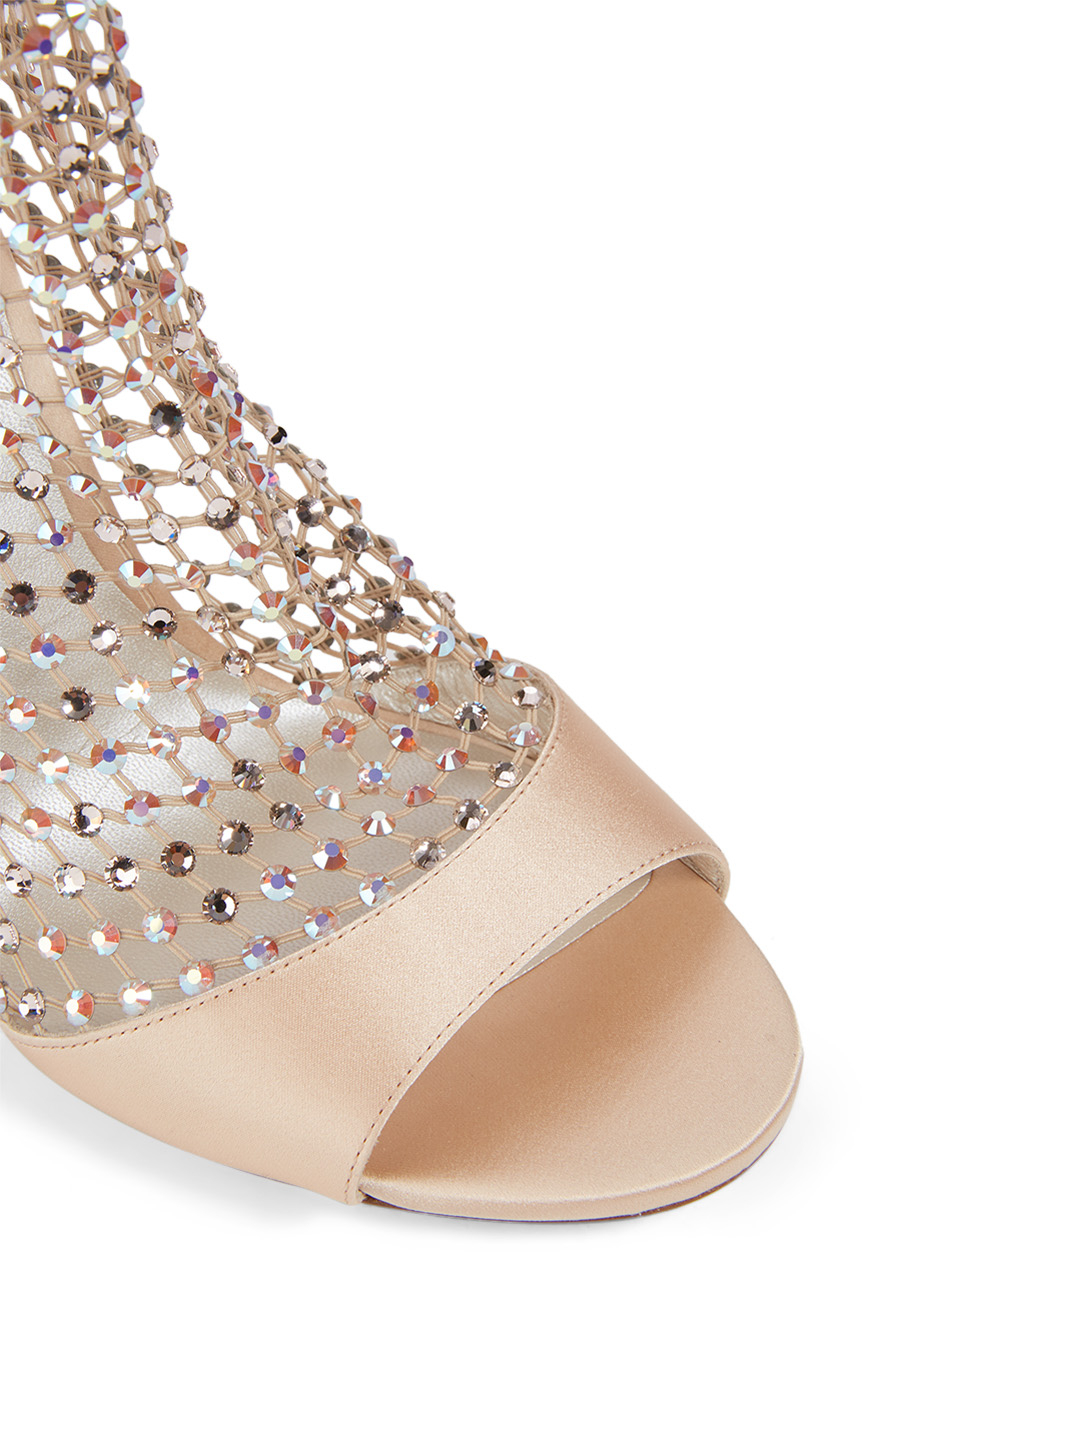 RENE CAOVILLA Galaxia 105 Satin And Crystal-Net Heeled Sandals Women's Neutral